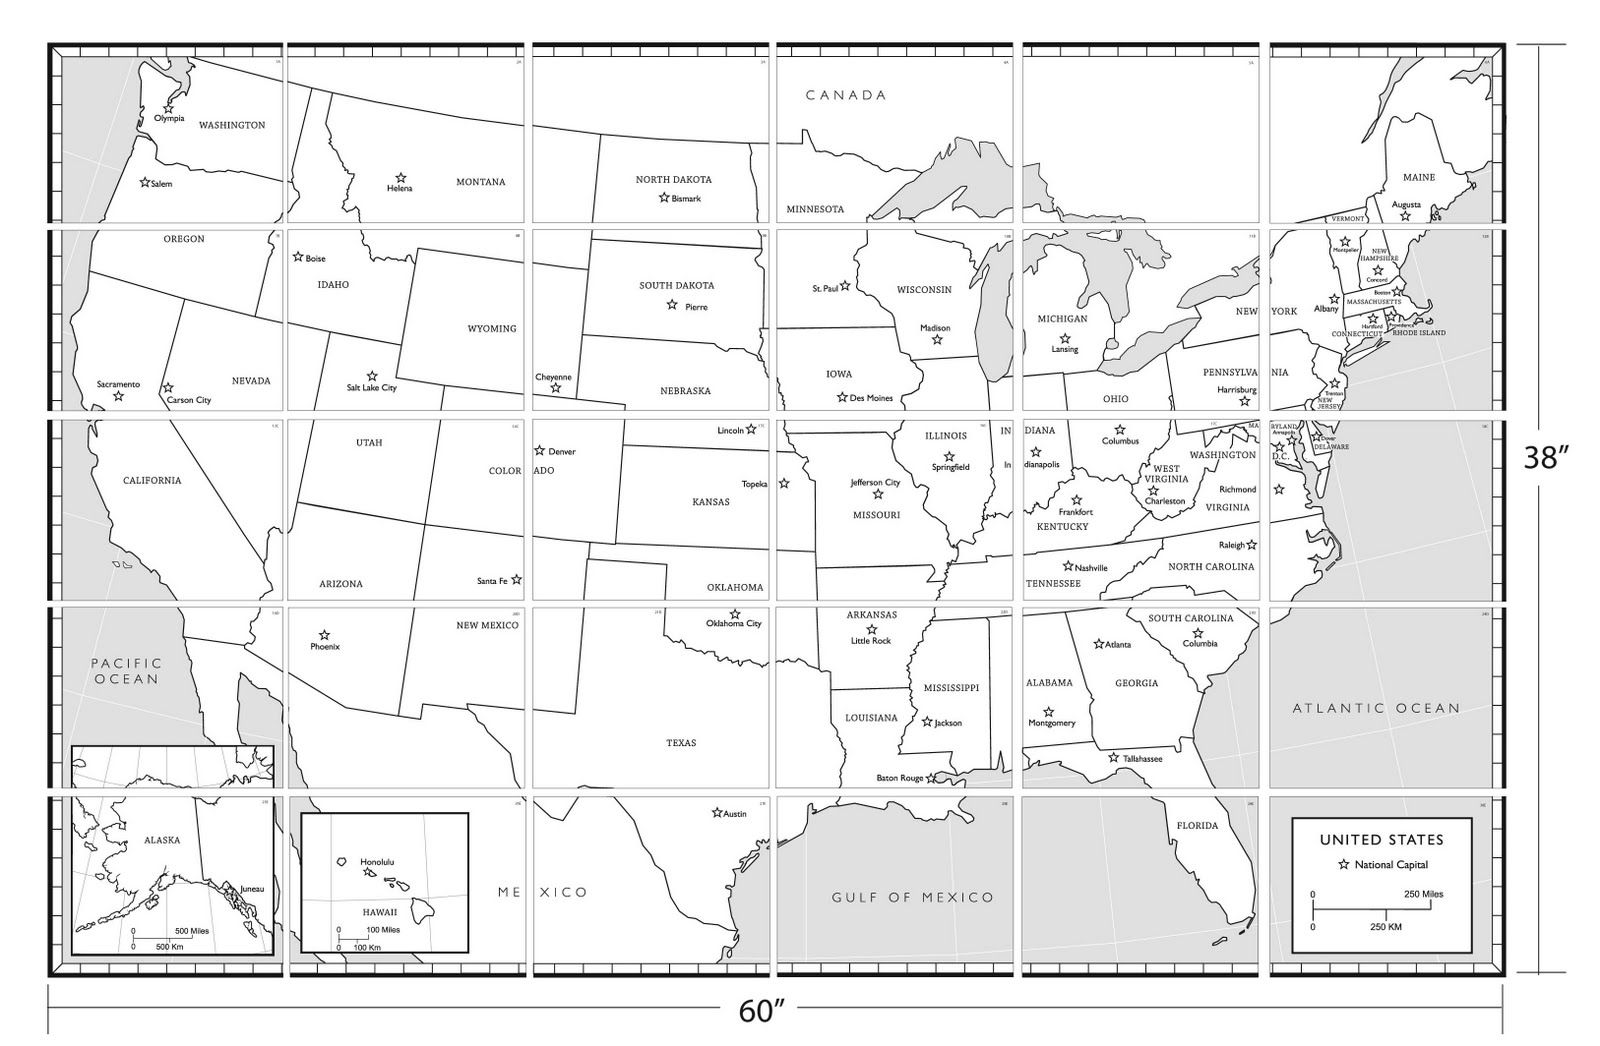 Coloring sheet united states map - United States Map